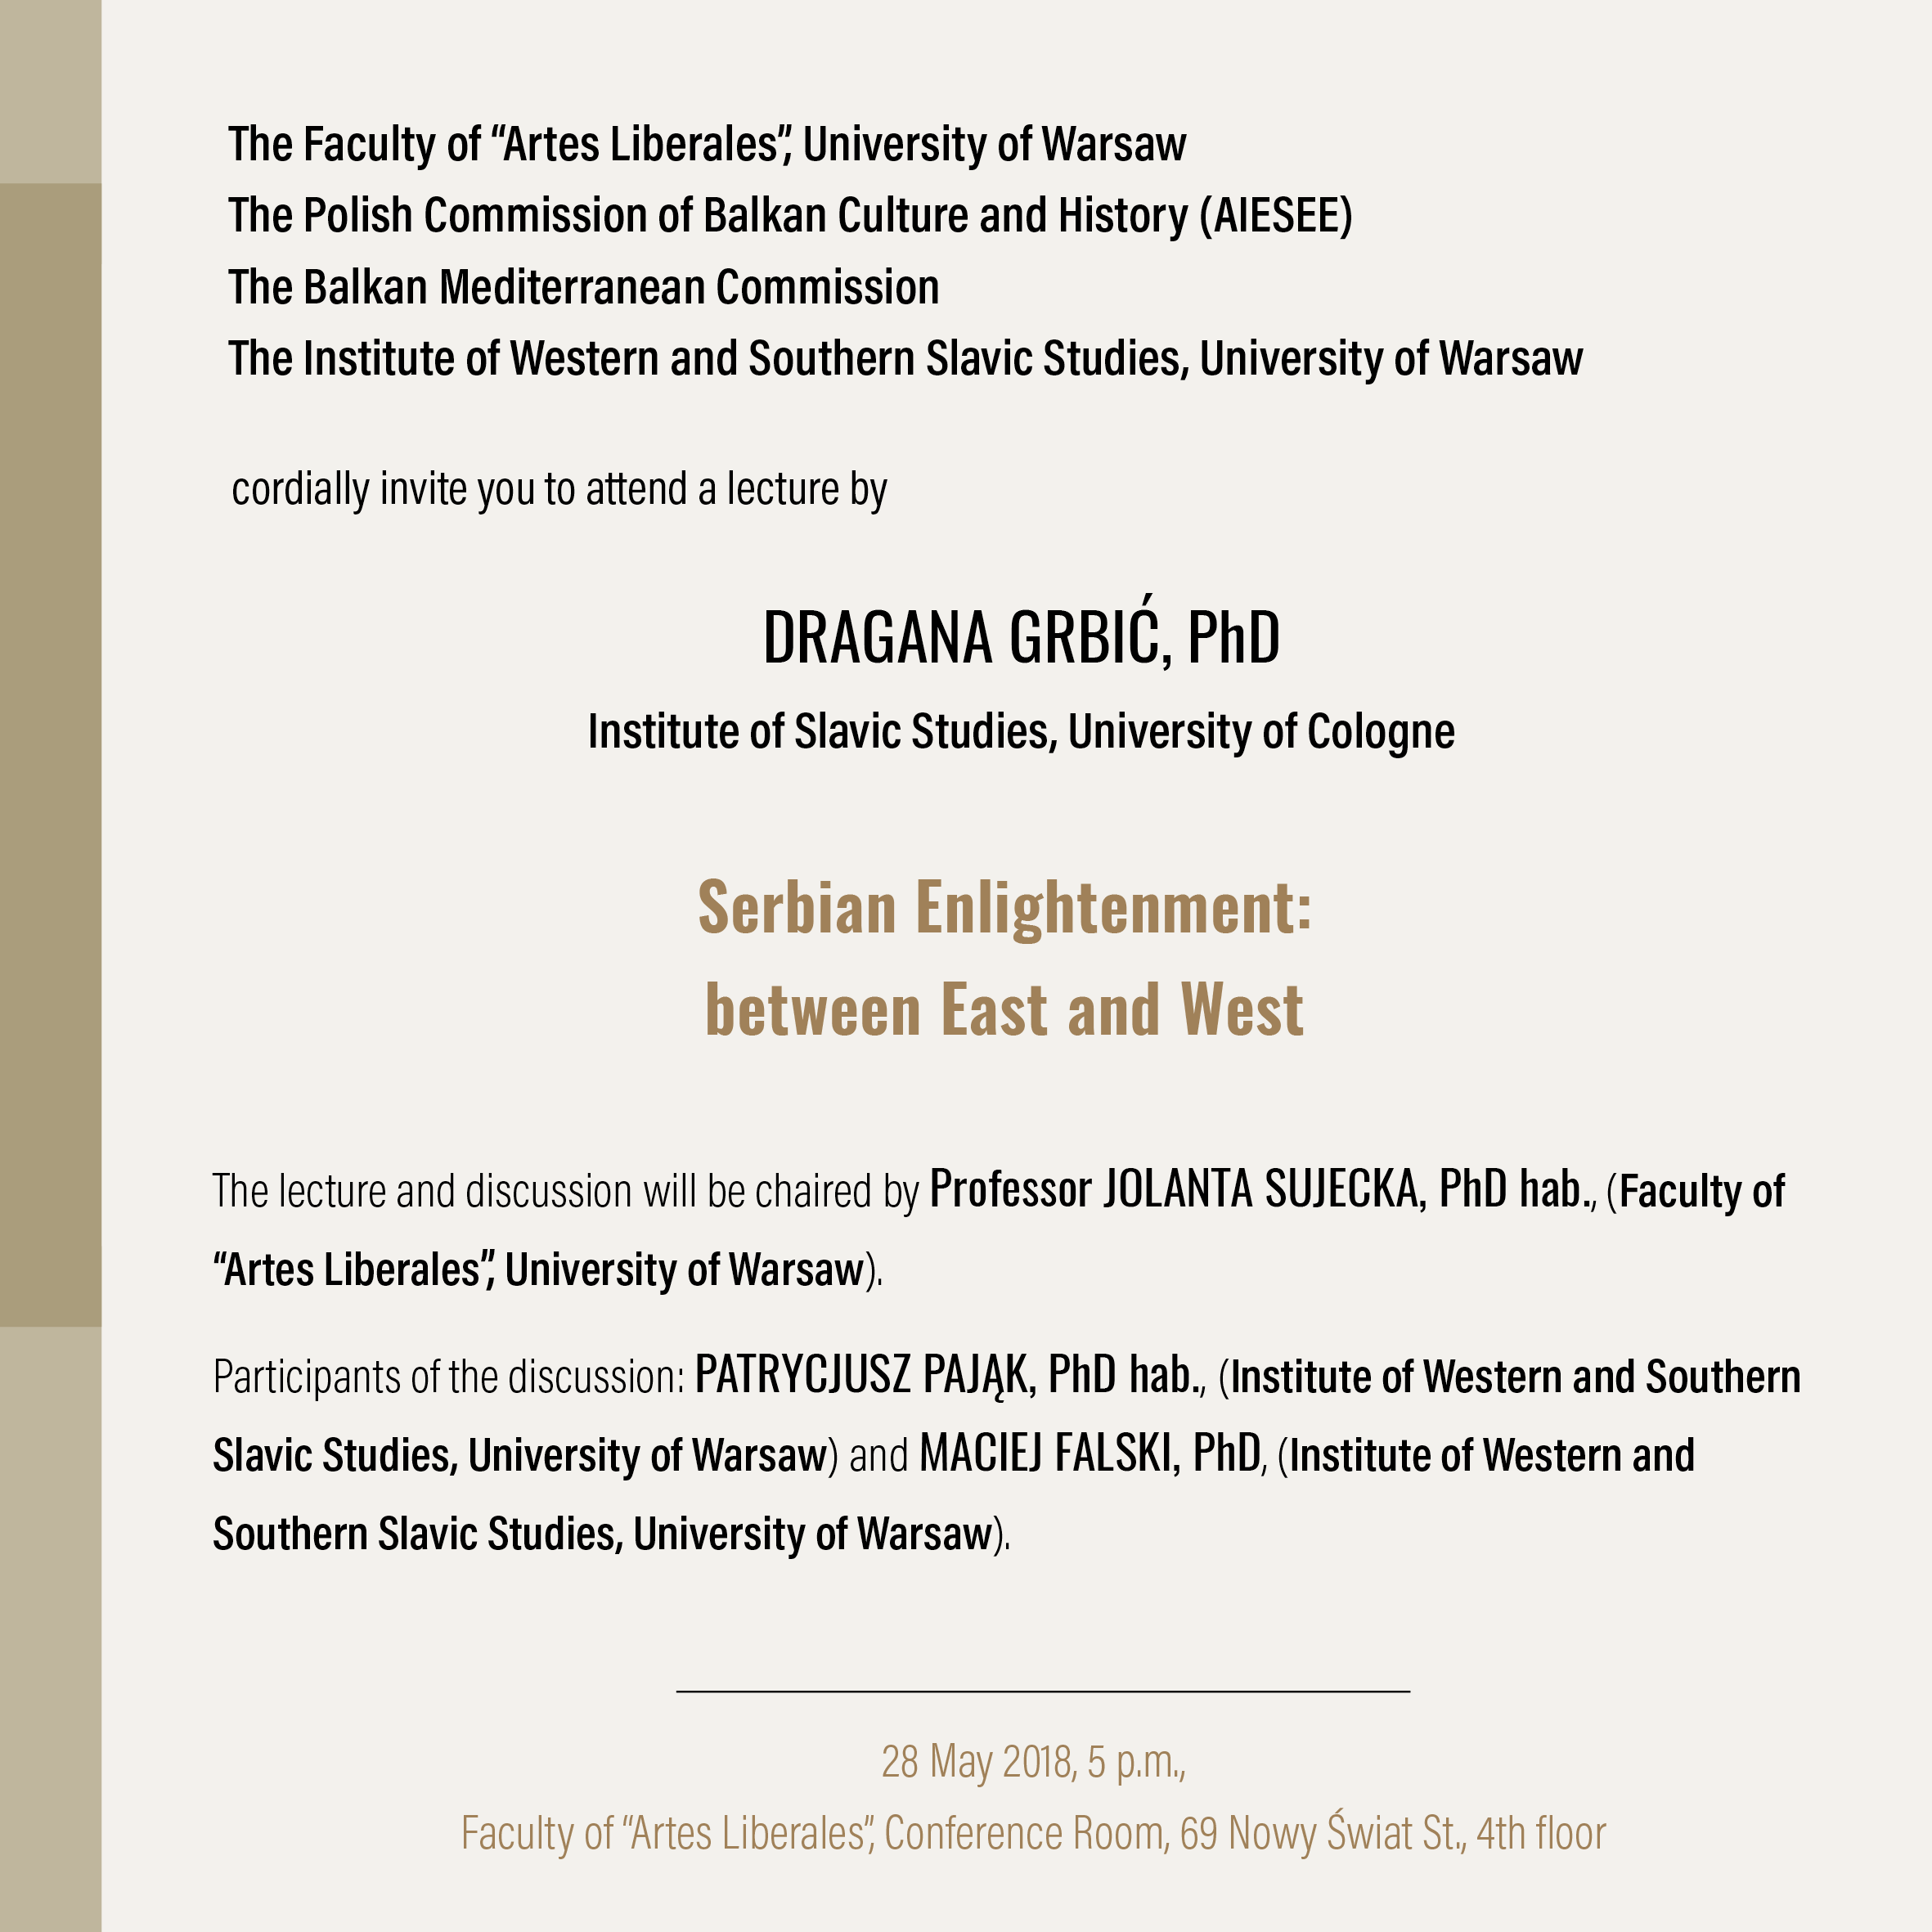 DRAGANA GRBIĆ lecture